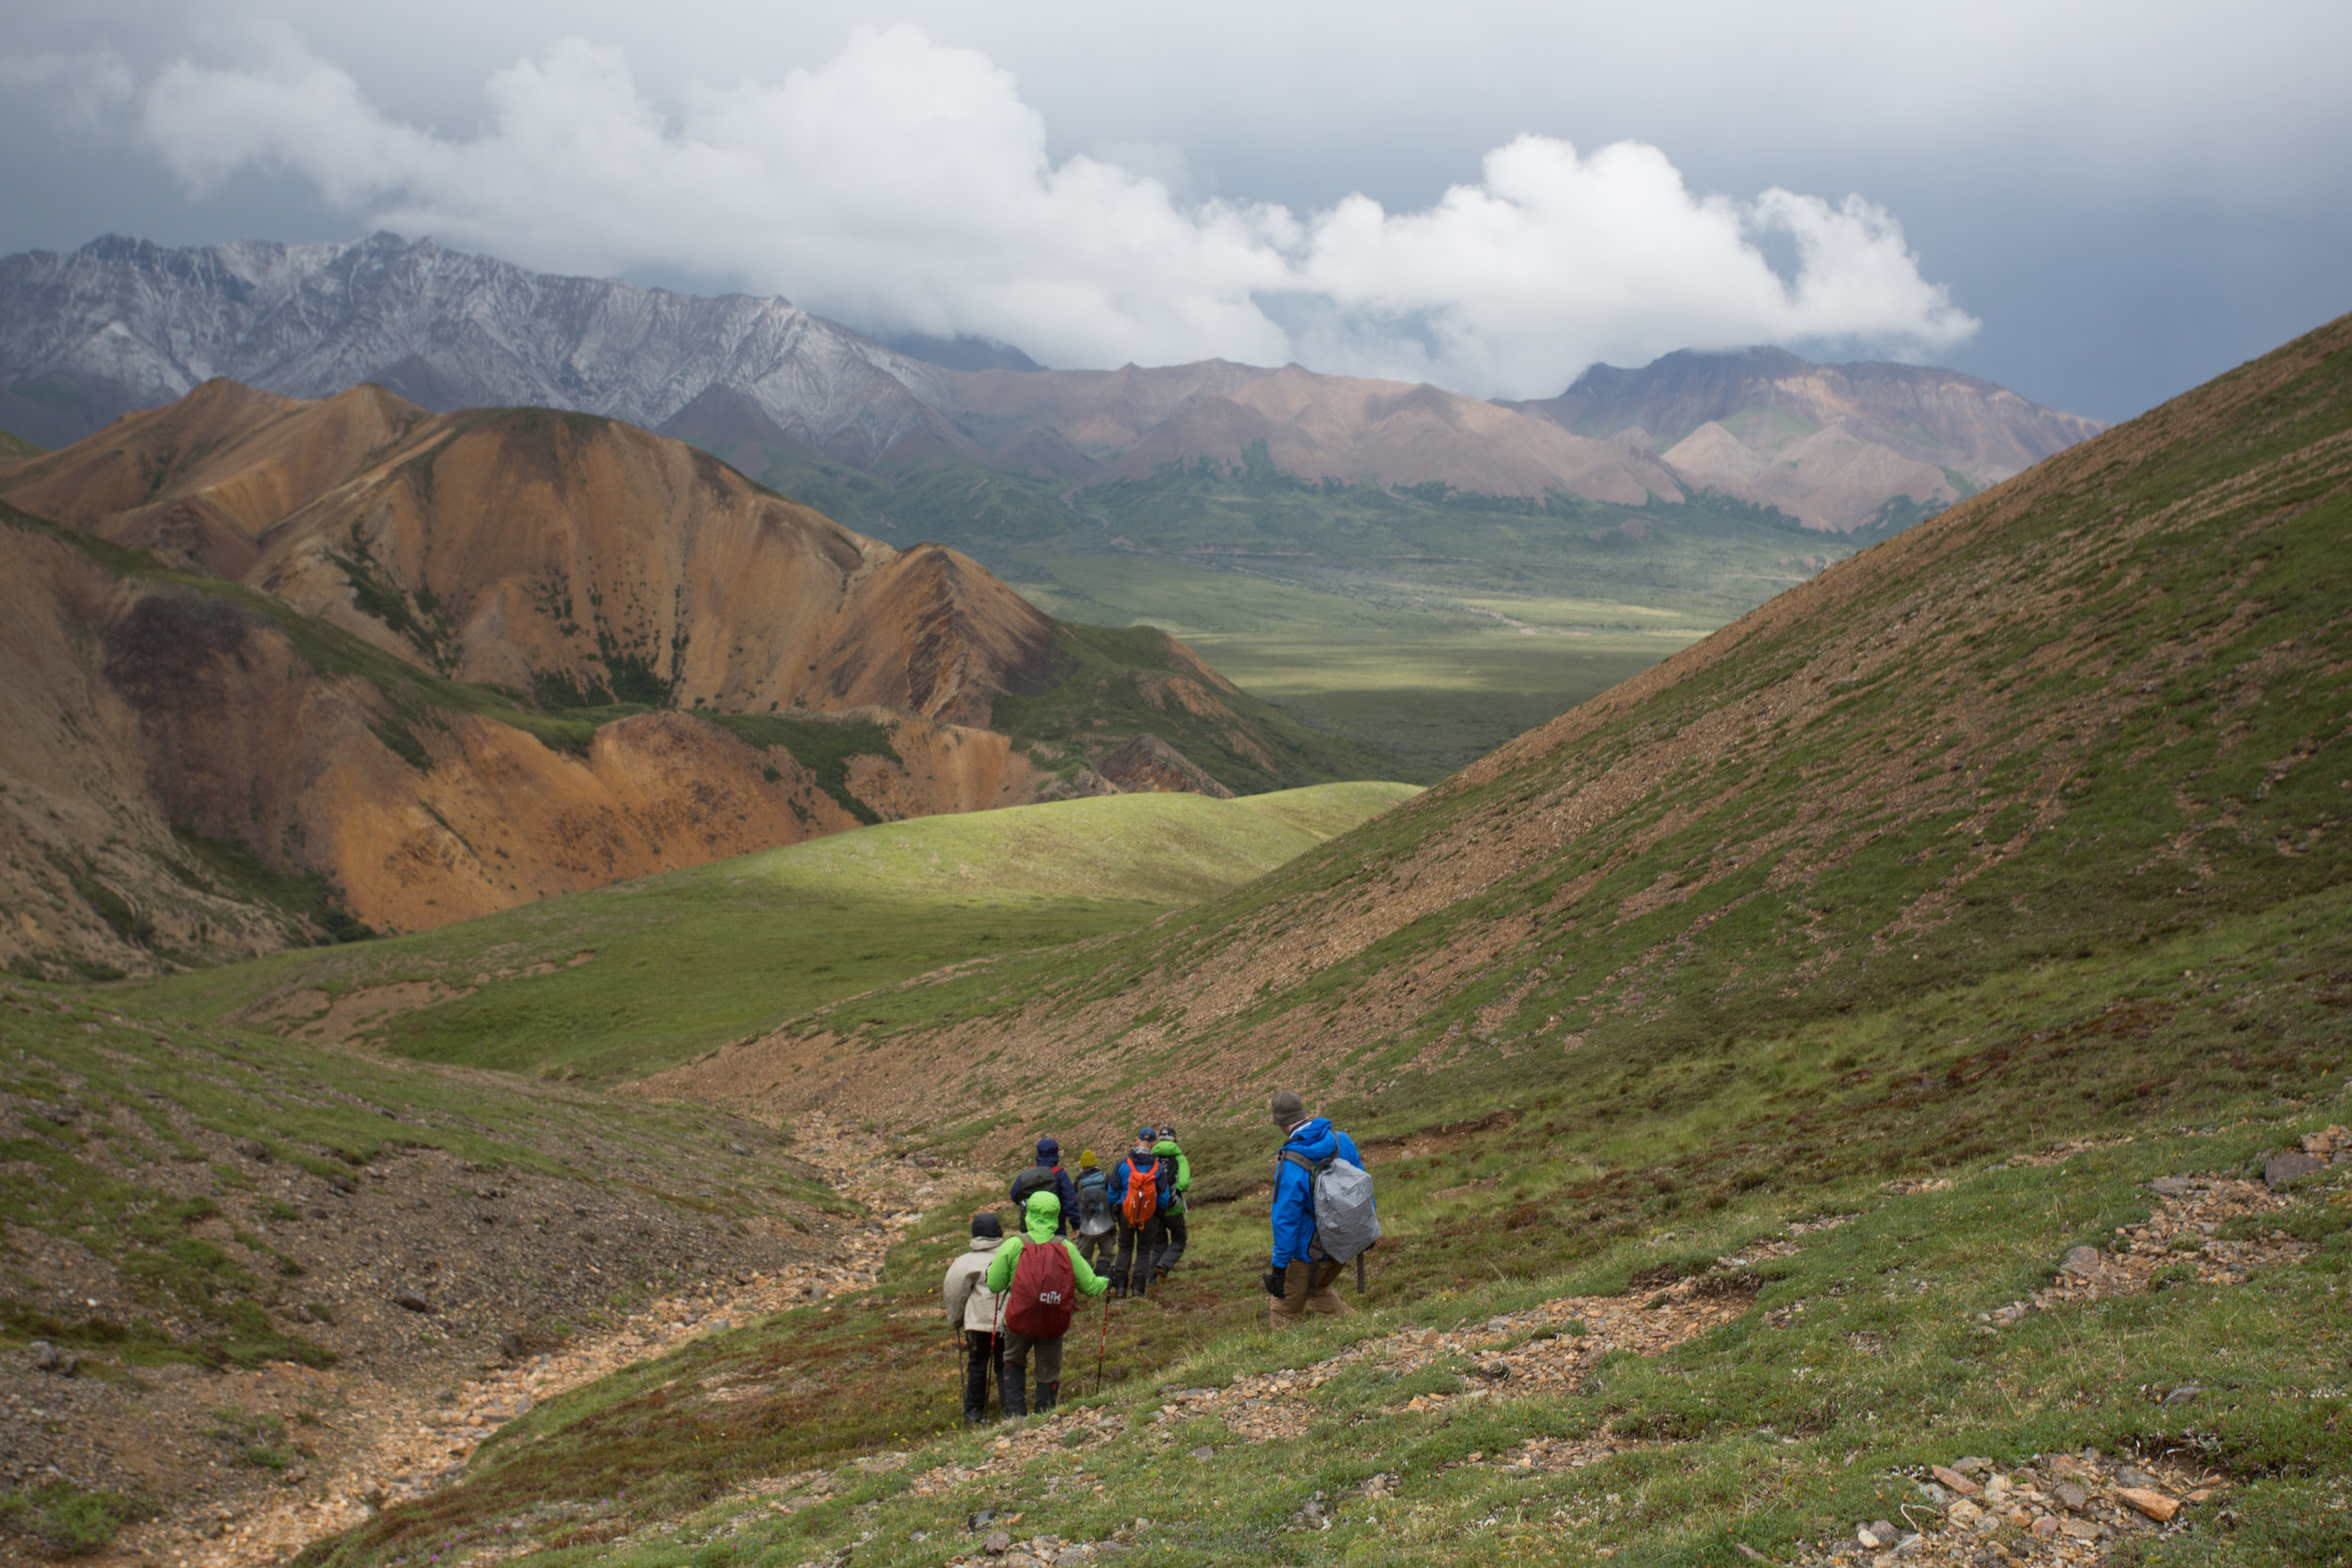 2015 Participants on a day-hike in Denali.